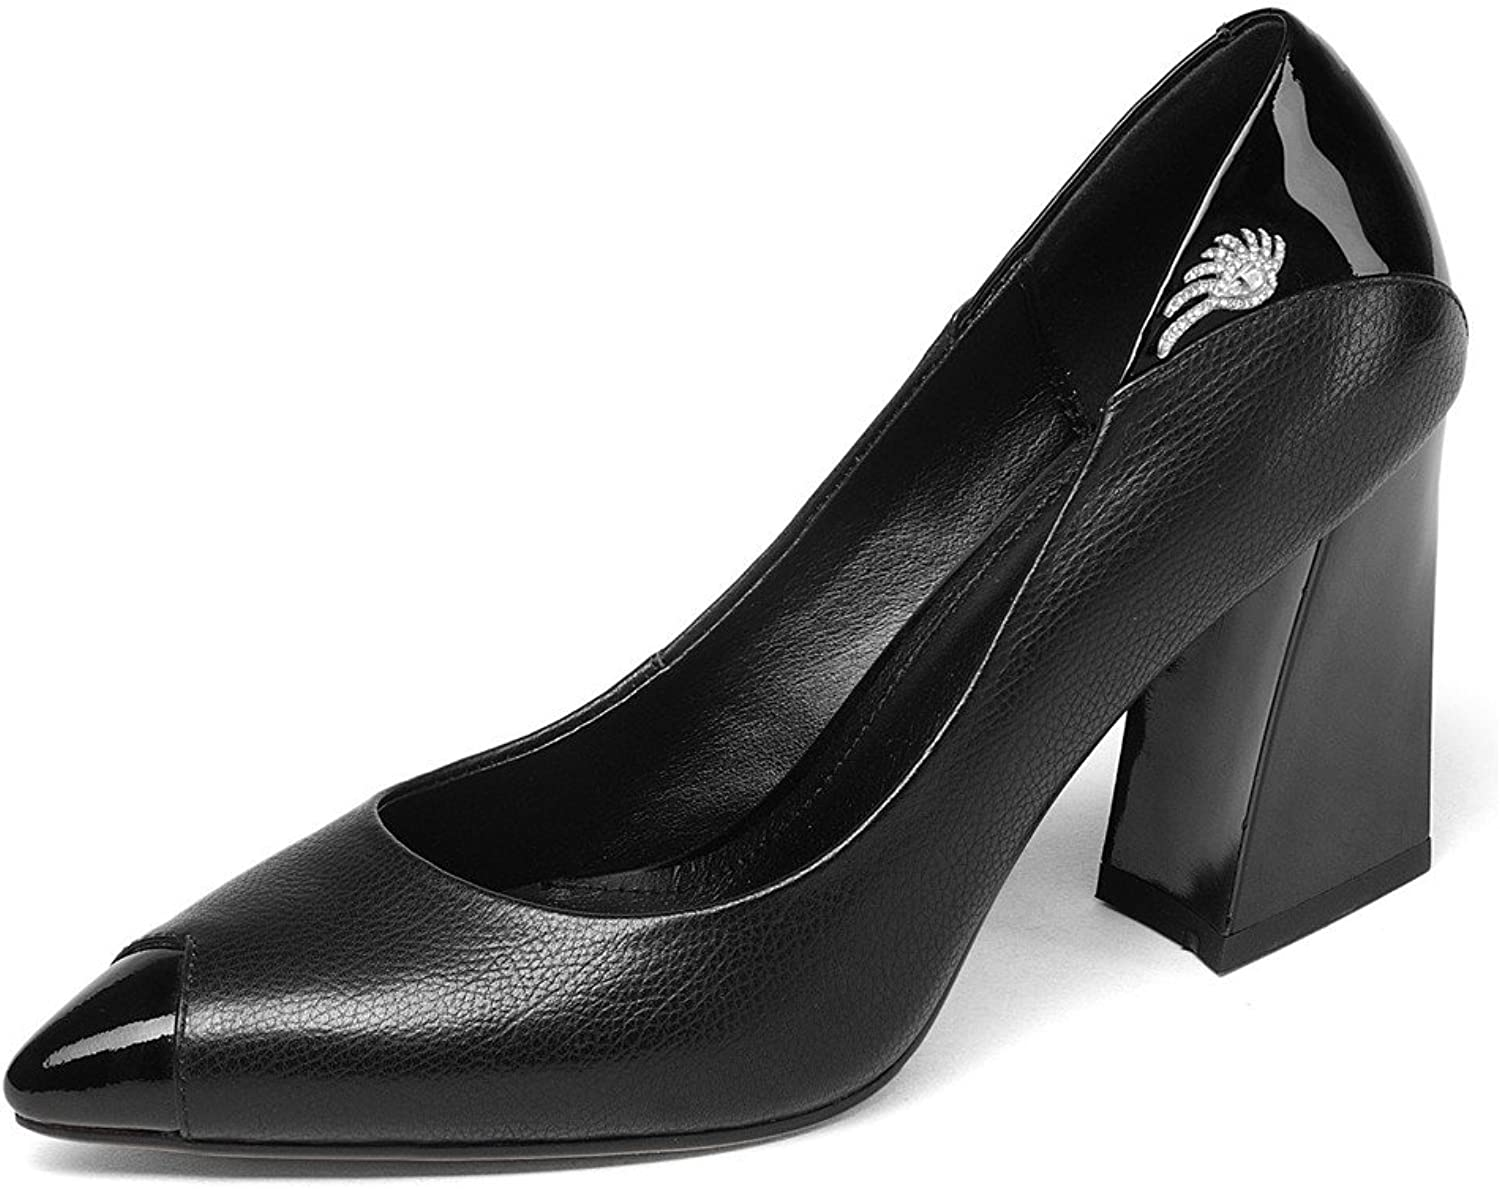 Nine Seven Genuine Leather Women's Pointy Toe Chunky Heel Business Office Handmade Classy Pumps shoes